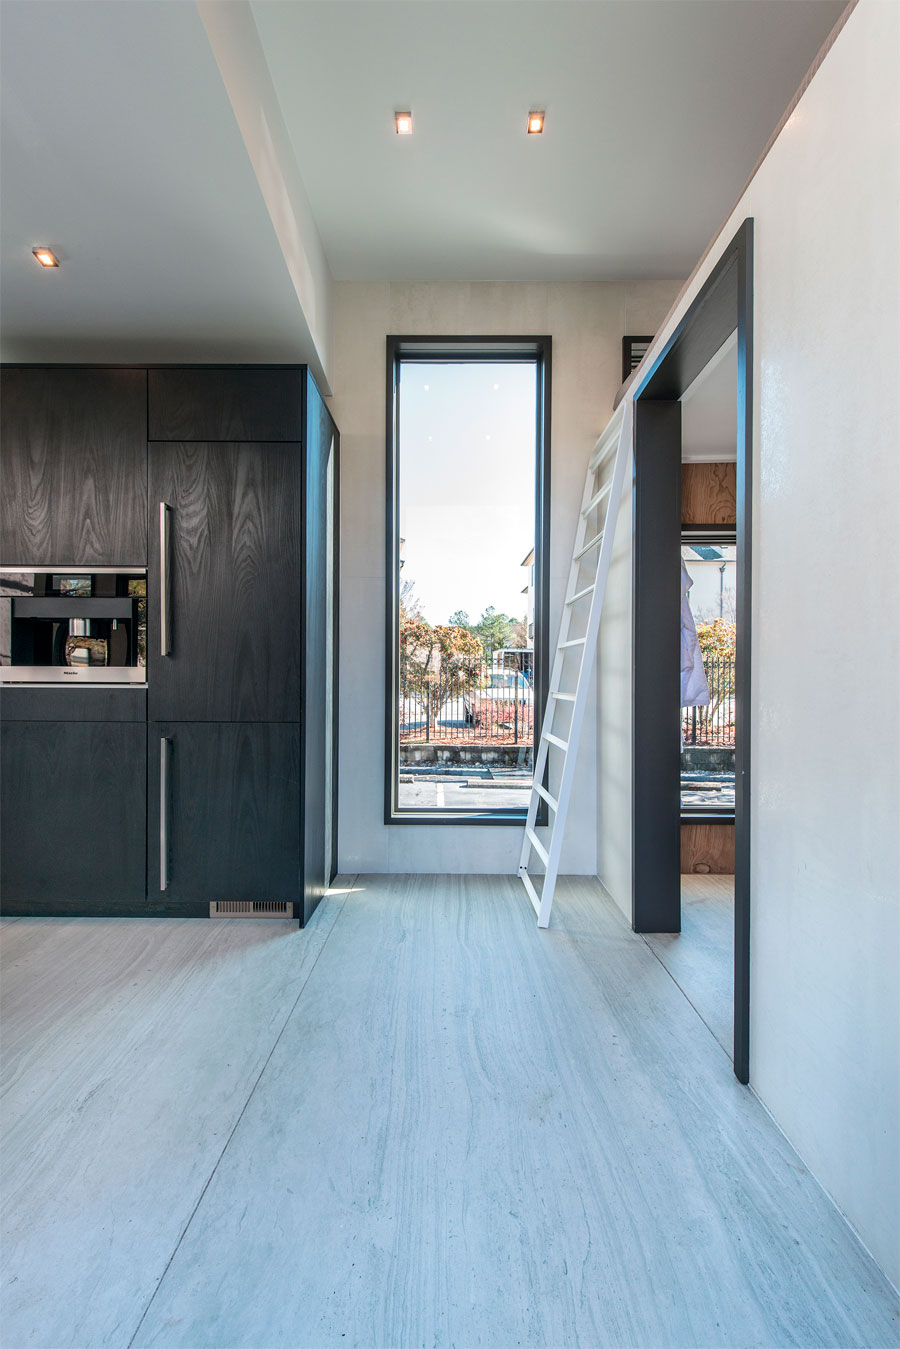 neolith-tiny-house-jeffrey-bruce-baker-5